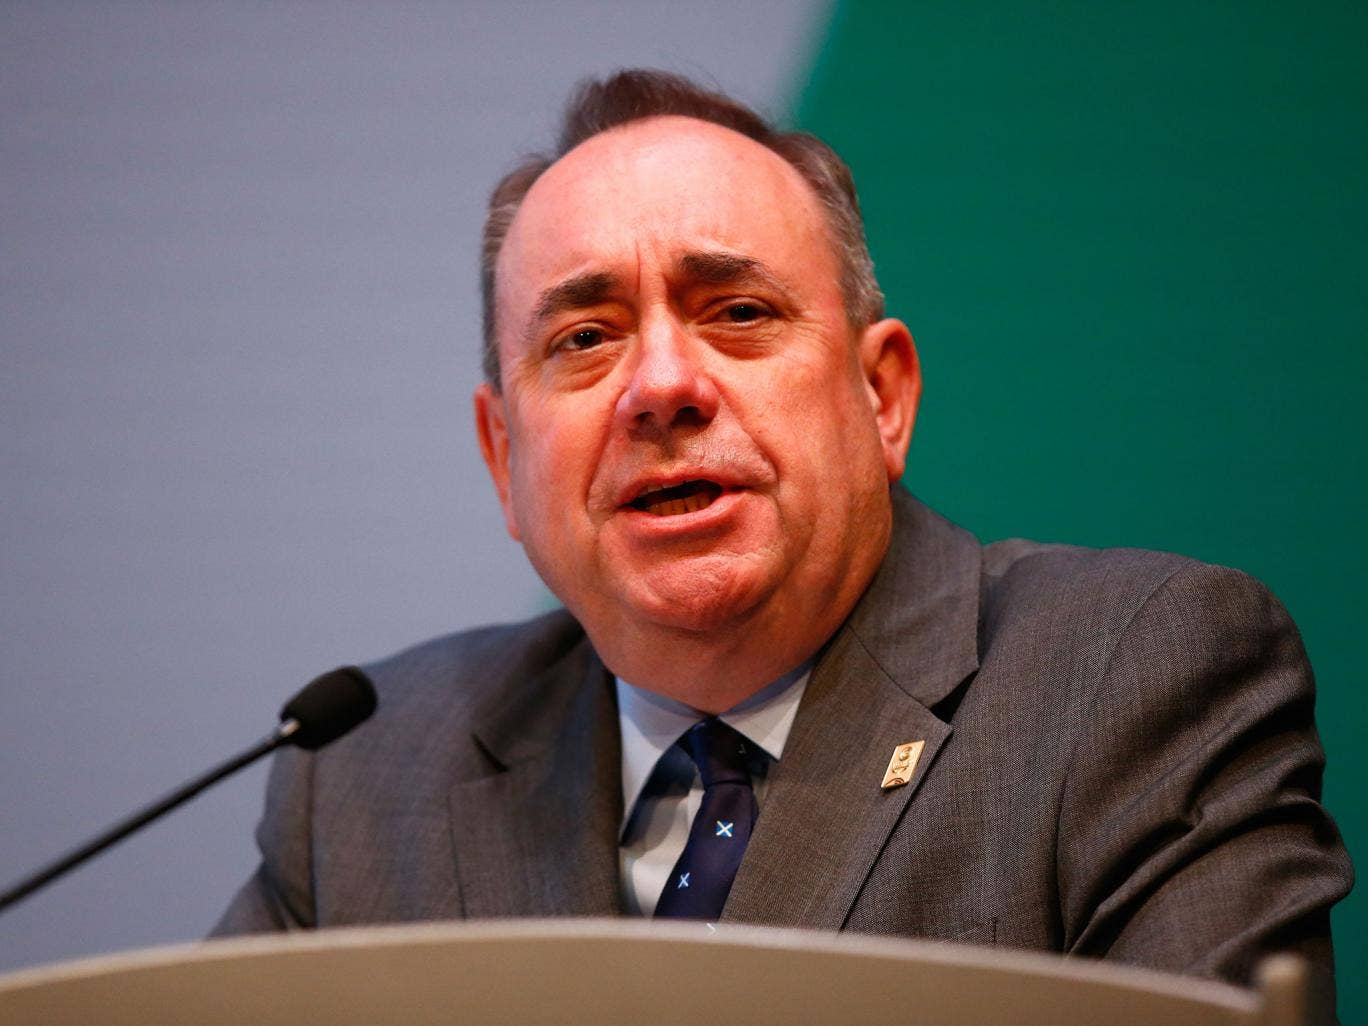 Polls show that Alex Salmond's Yes campaign not benefited from the Commonwealth Games in Glasgow